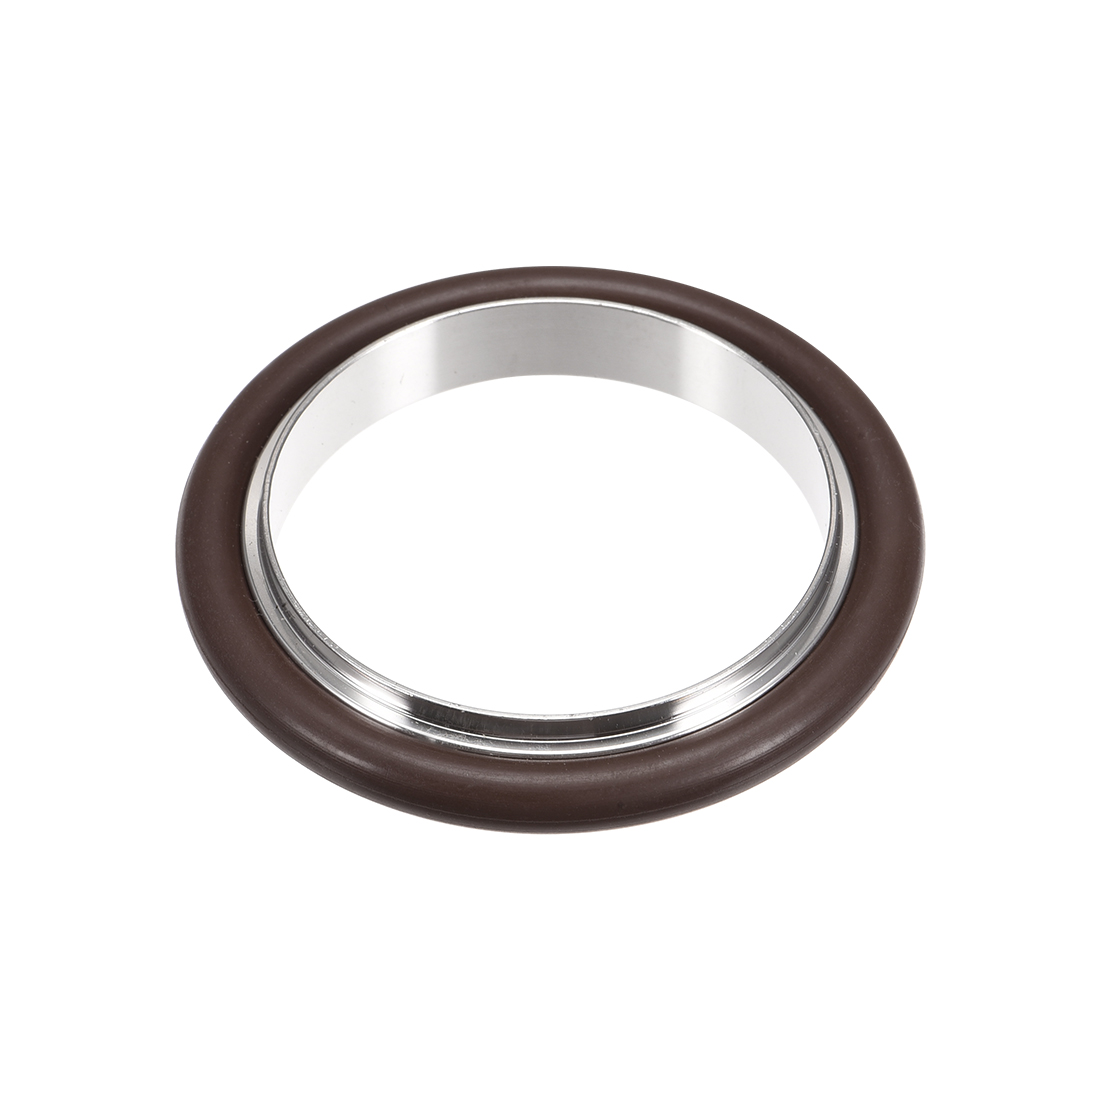 uxcell Centering Ring KF-16 Vacuum Fittings ISO-KF Flange 53mm x 39.7mm Fluororubber O-Ring